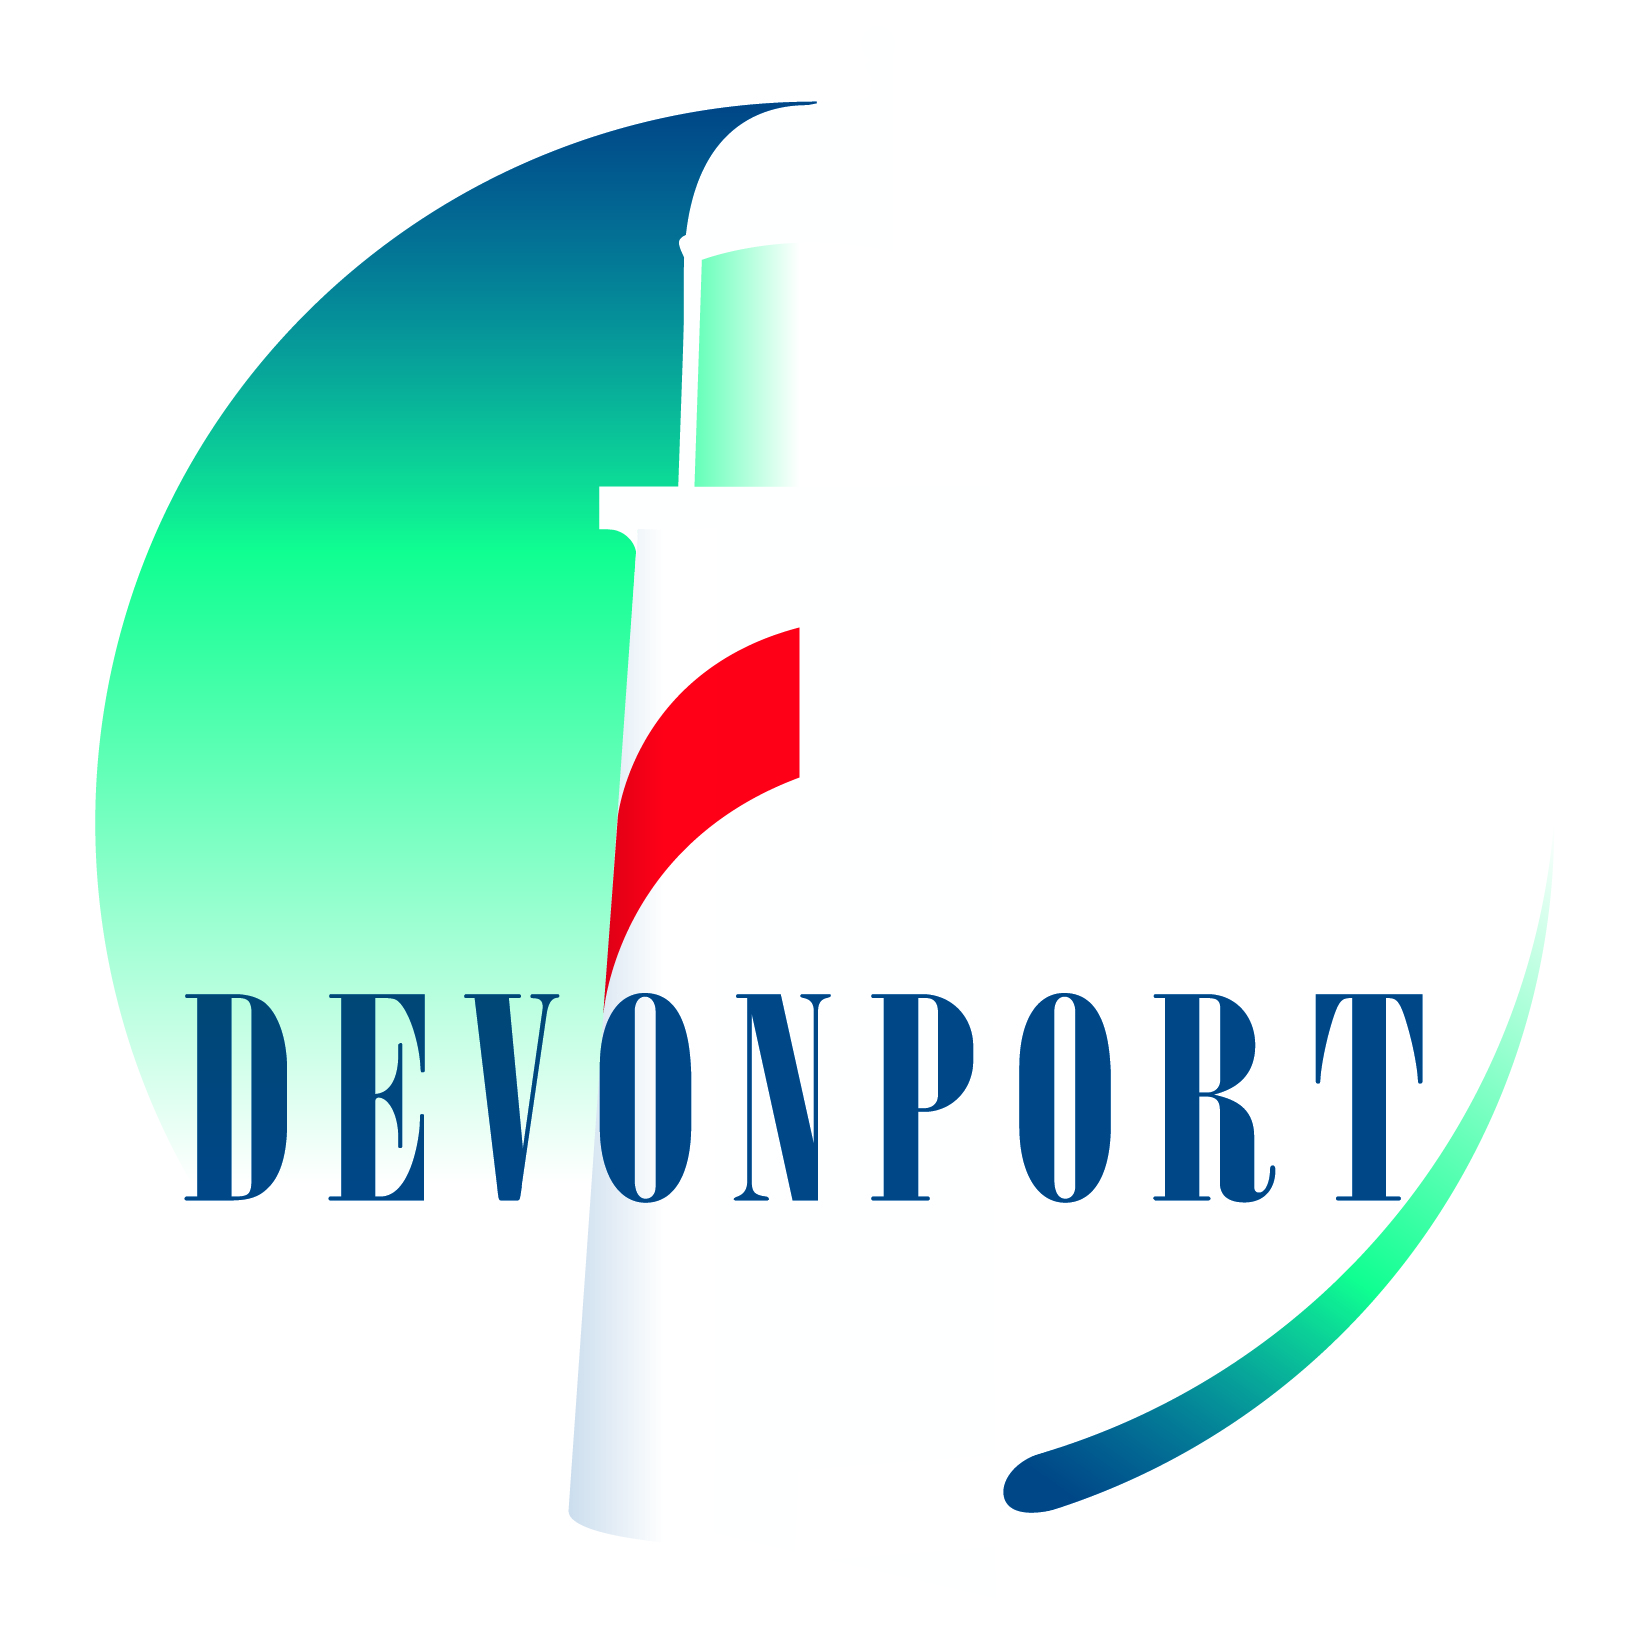 Devonport council logo